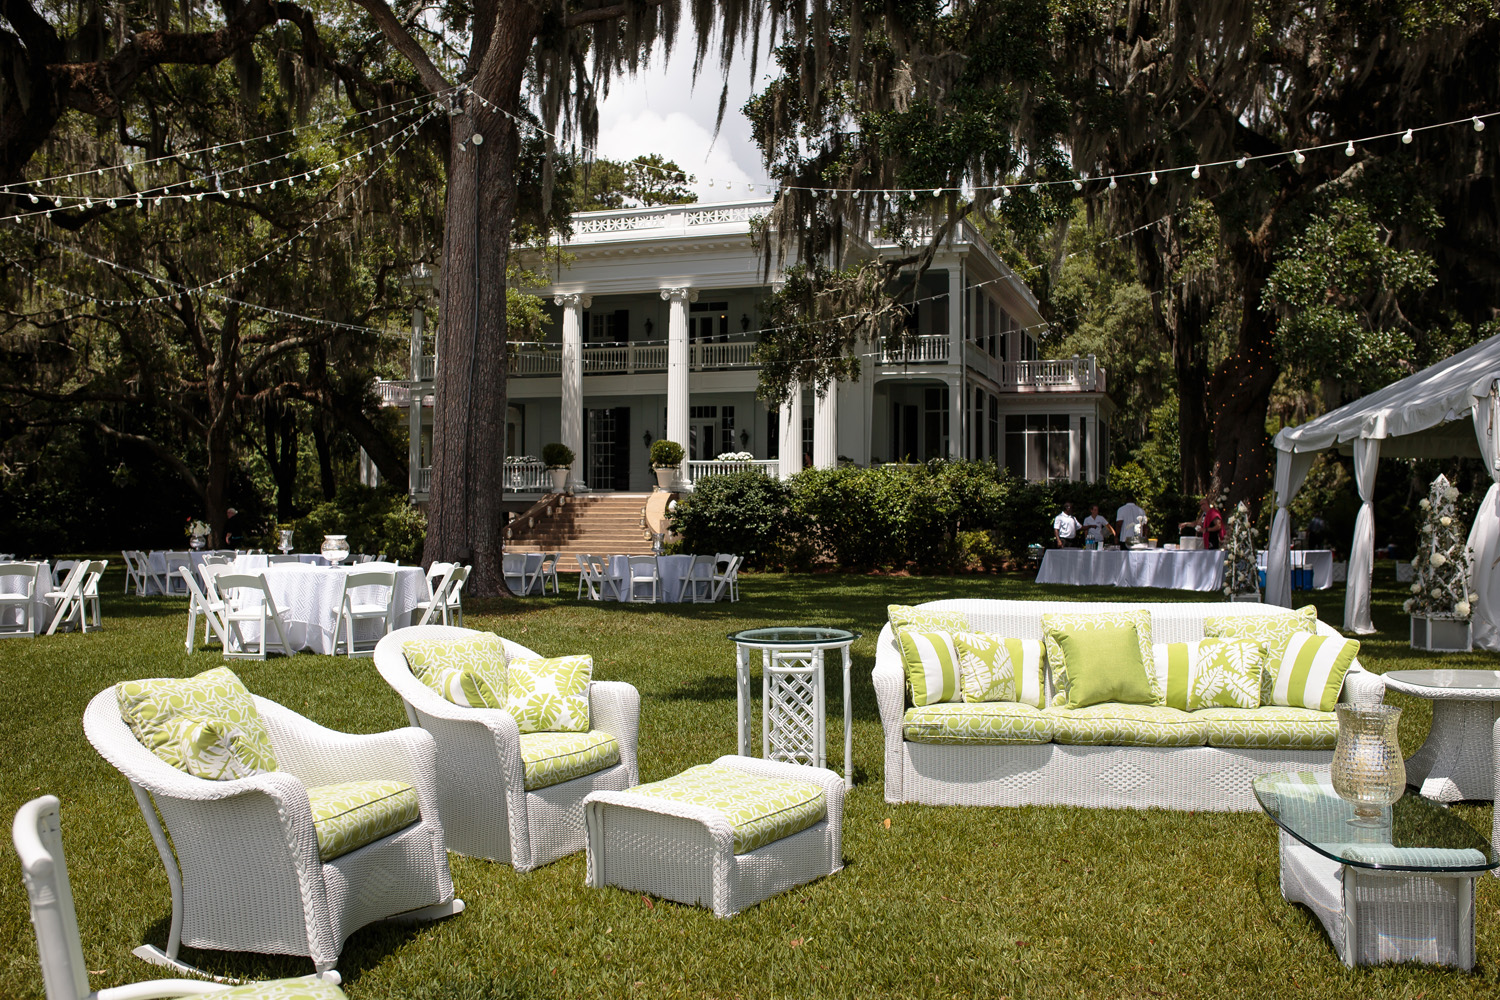 Pantone's 2017 Color of the Year Greenery wedding inspiration lime green white lounge furniture outdoor reception